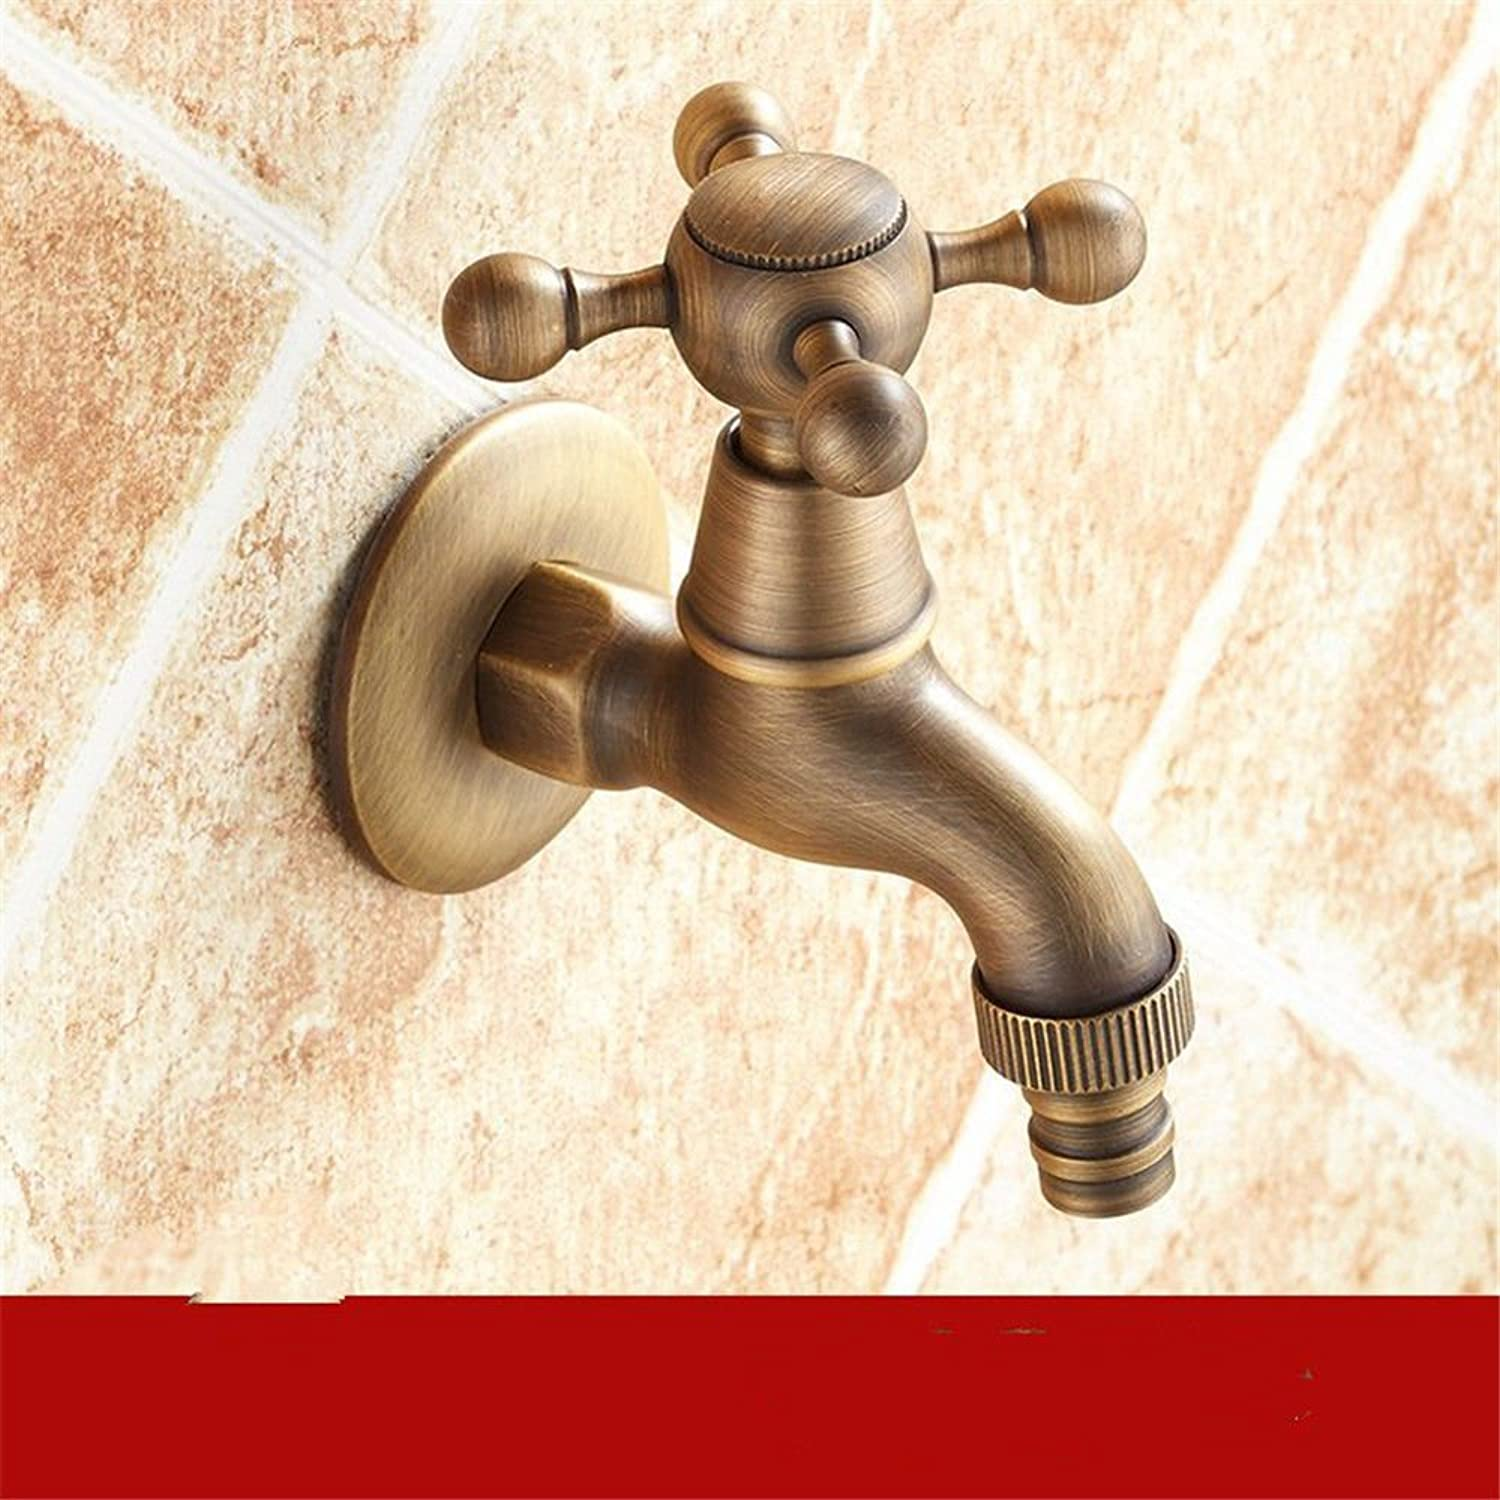 Lpophy Bathroom Sink Mixer Taps Faucet Bath Waterfall Cold and Hot Water Tap for Washroom Bathroom and Kitchen All Copper 4 Points Retro Into The Wall 6 Points Single Cold A